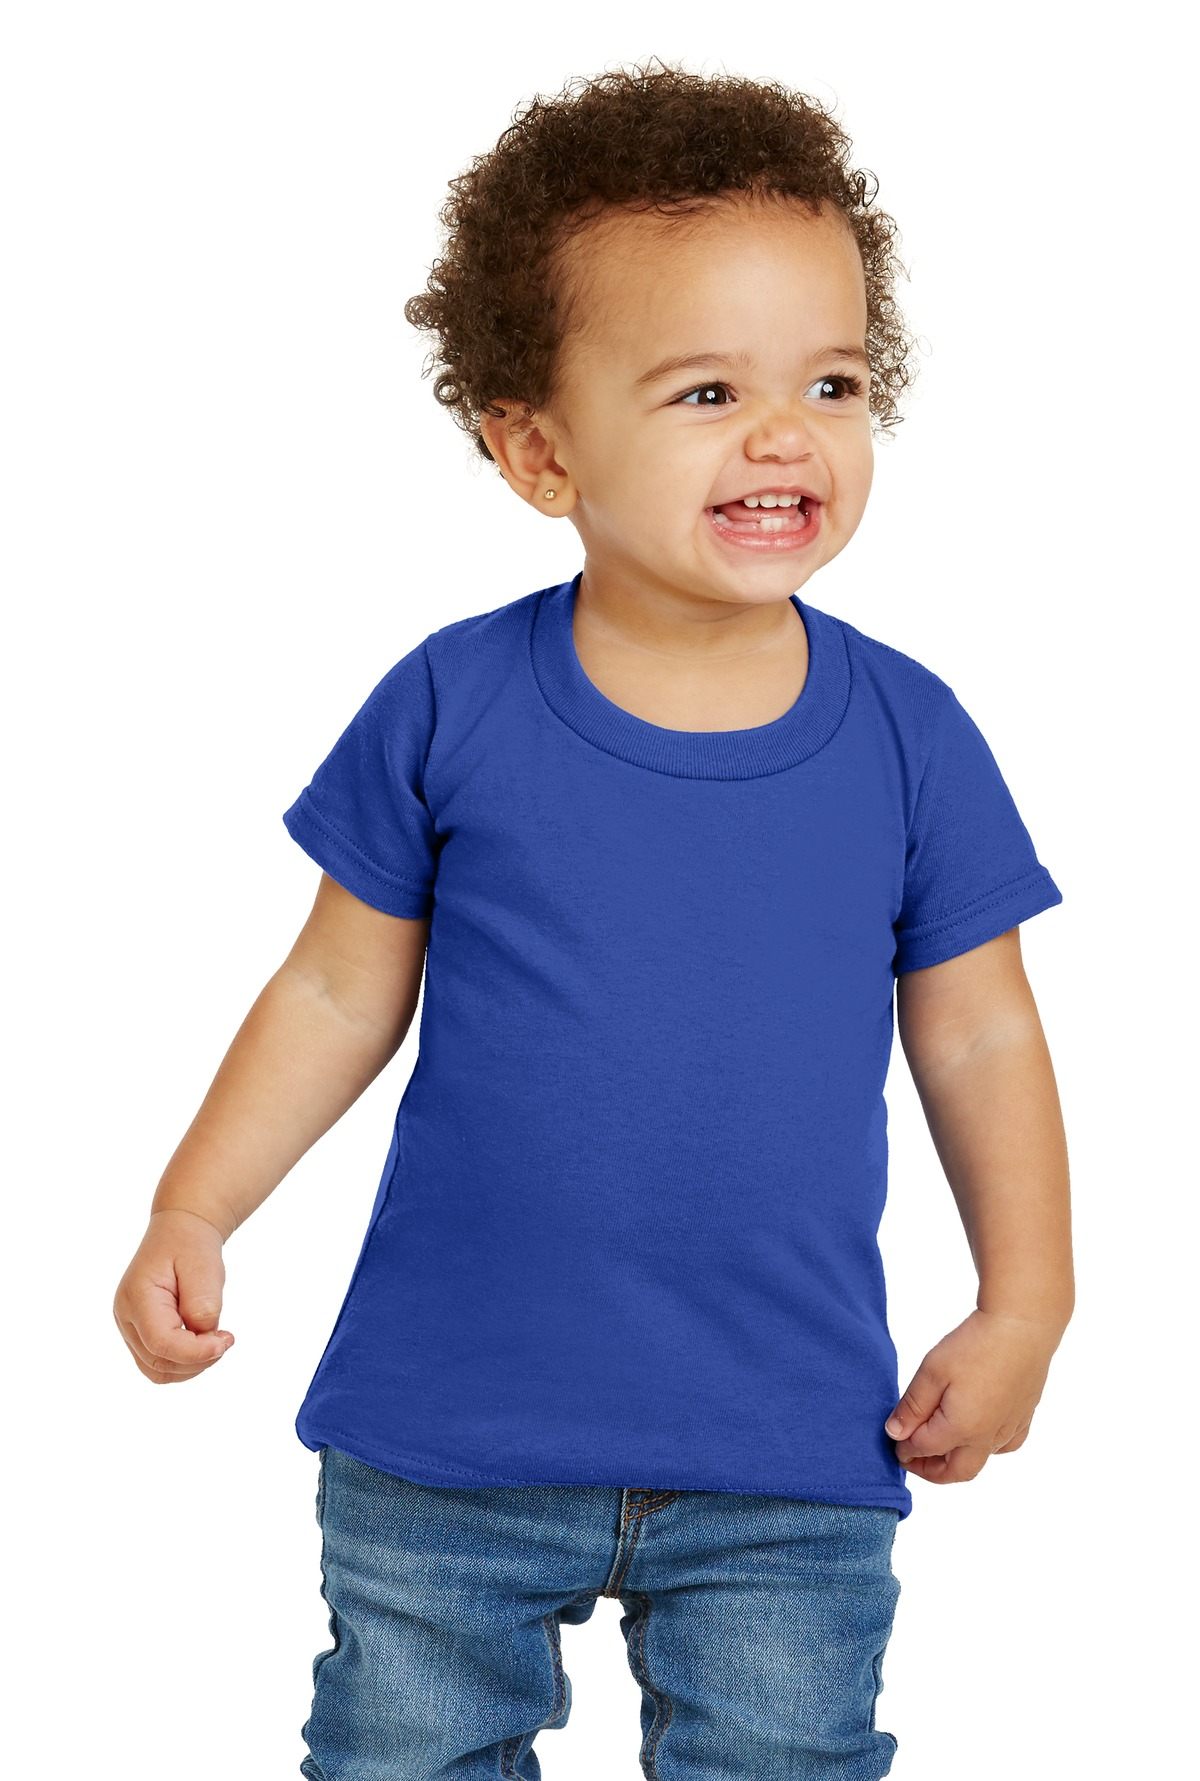 SanMar Gildan 5100P, Gildan® Toddler Heavy Cotton 100% Cotton T-Shirt.